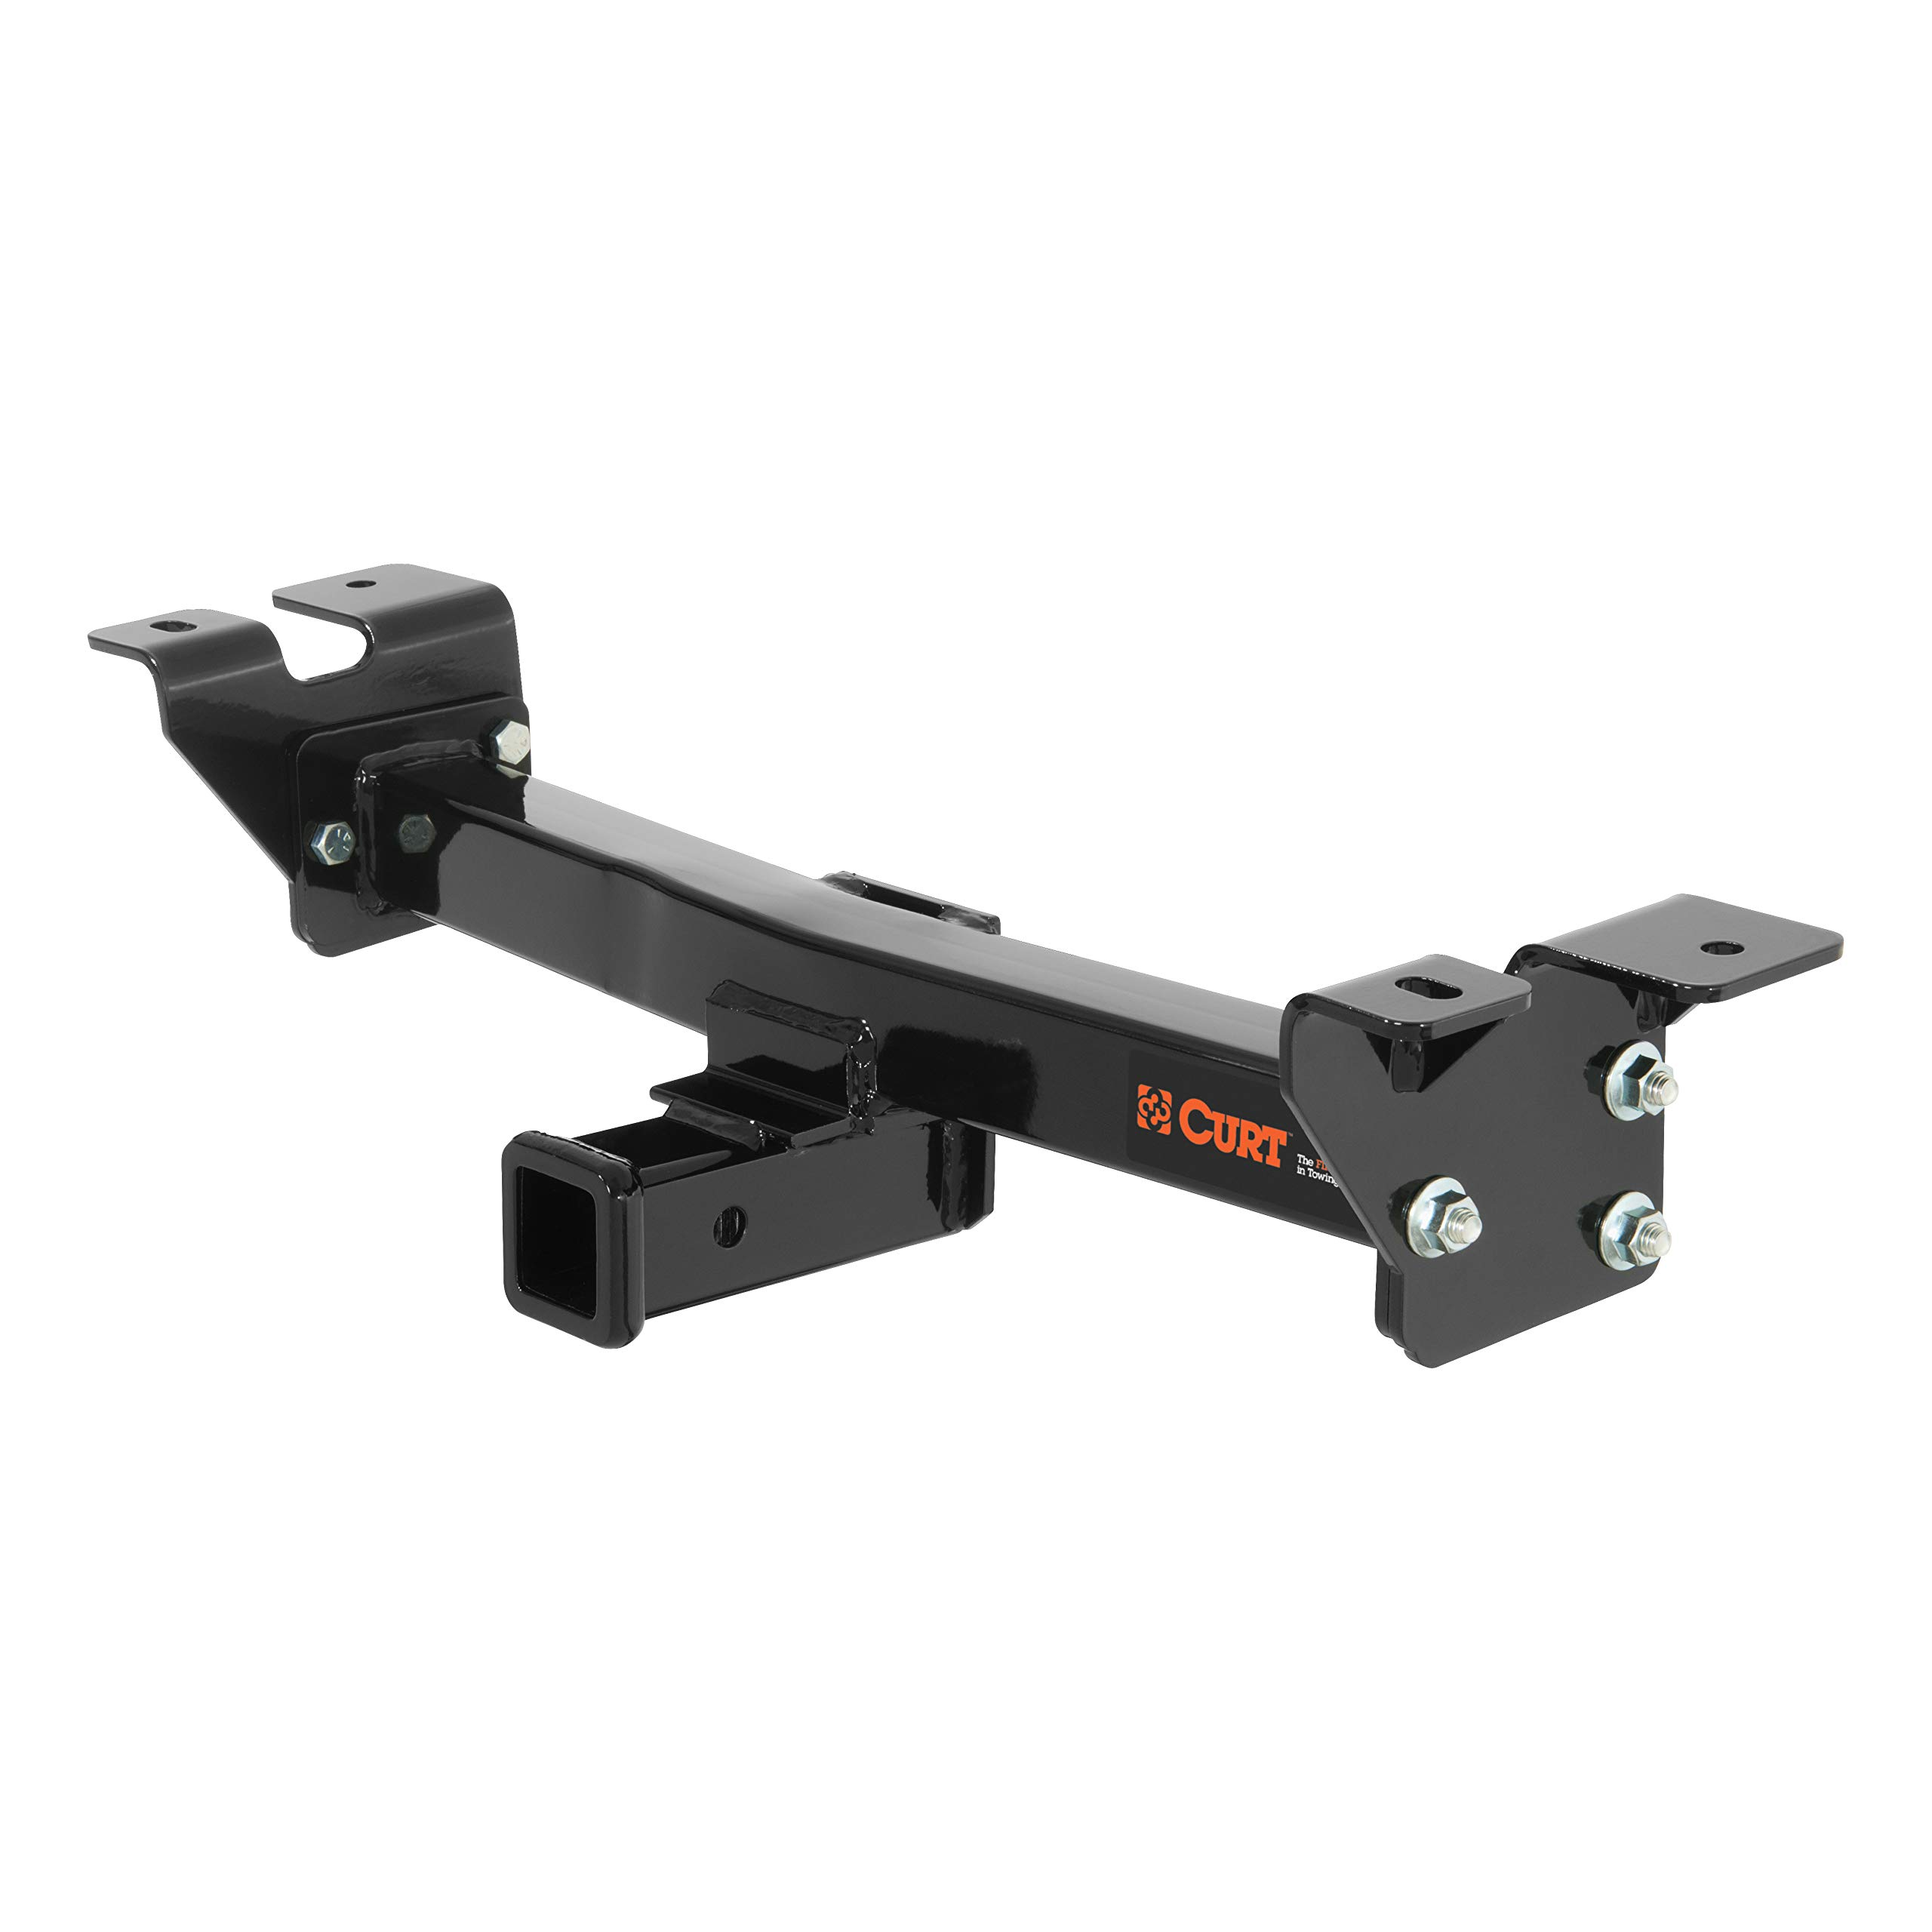 CURT 31302 Front Hitch with 2-Inch Receiver, Fits Select Cadillac, Chevrolet and GMC Trucks and SUVs by CURT